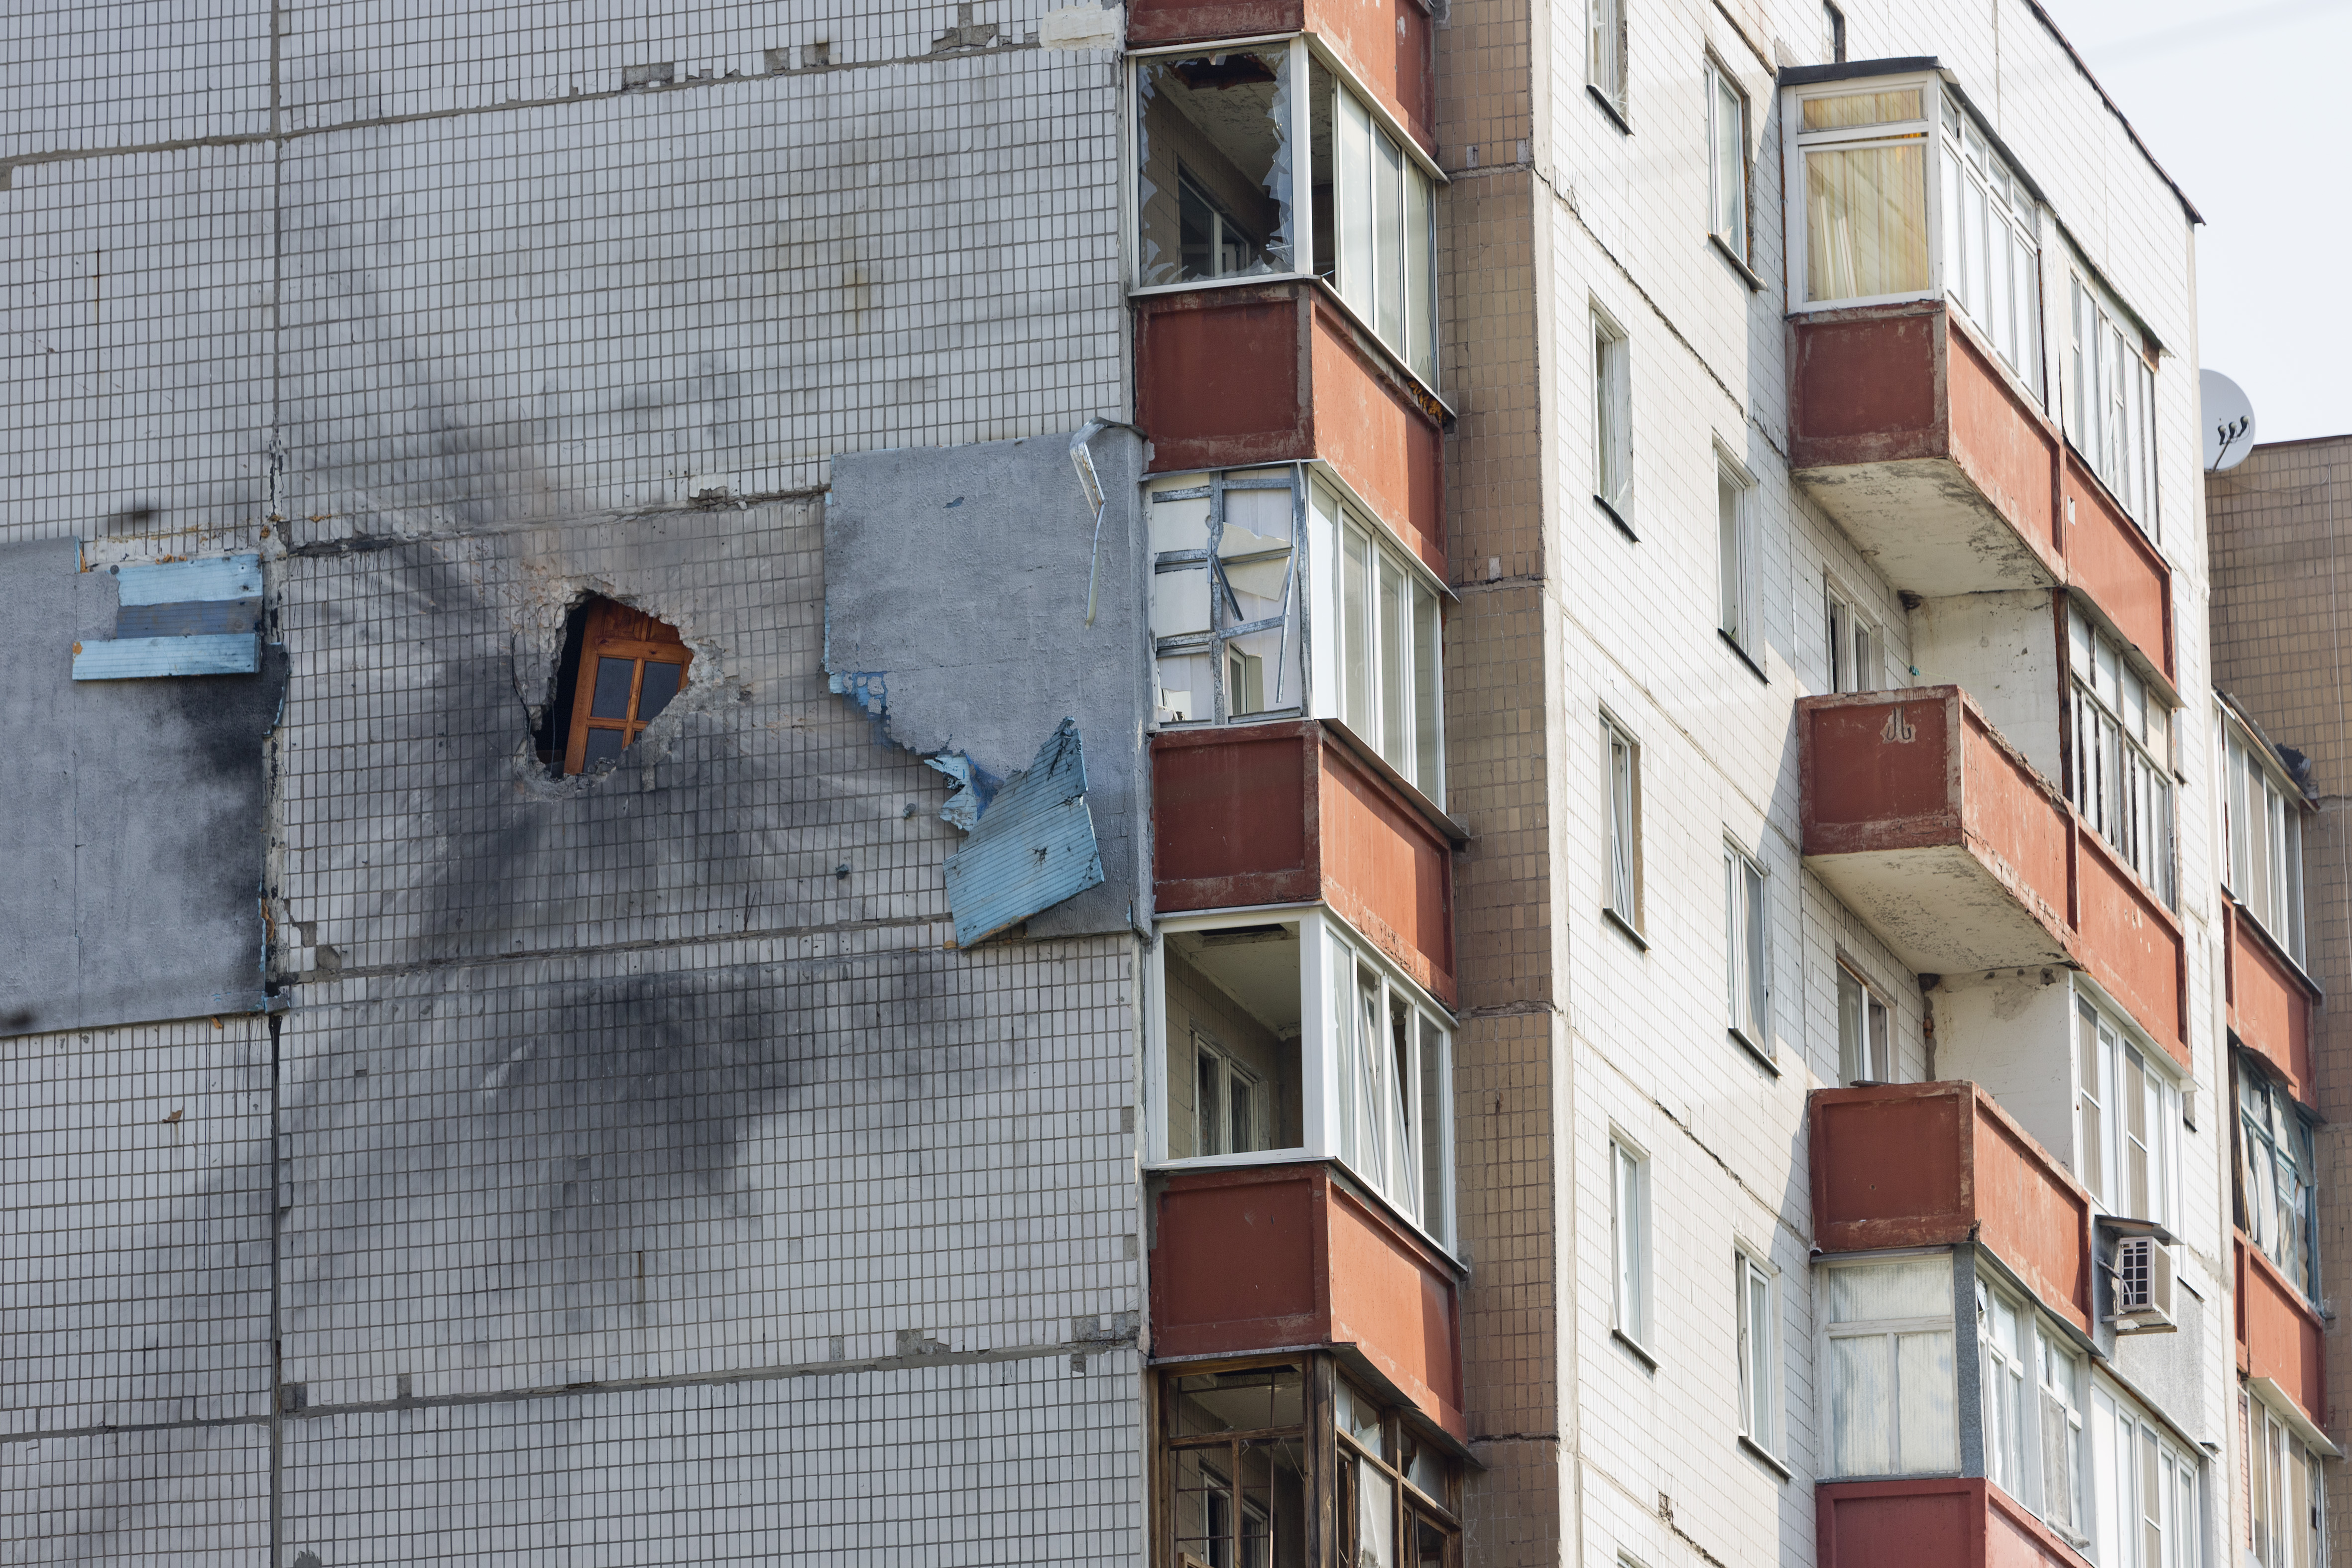 Shells damage a residential building on August 11, 2014 in Donetsk, Ukraine.